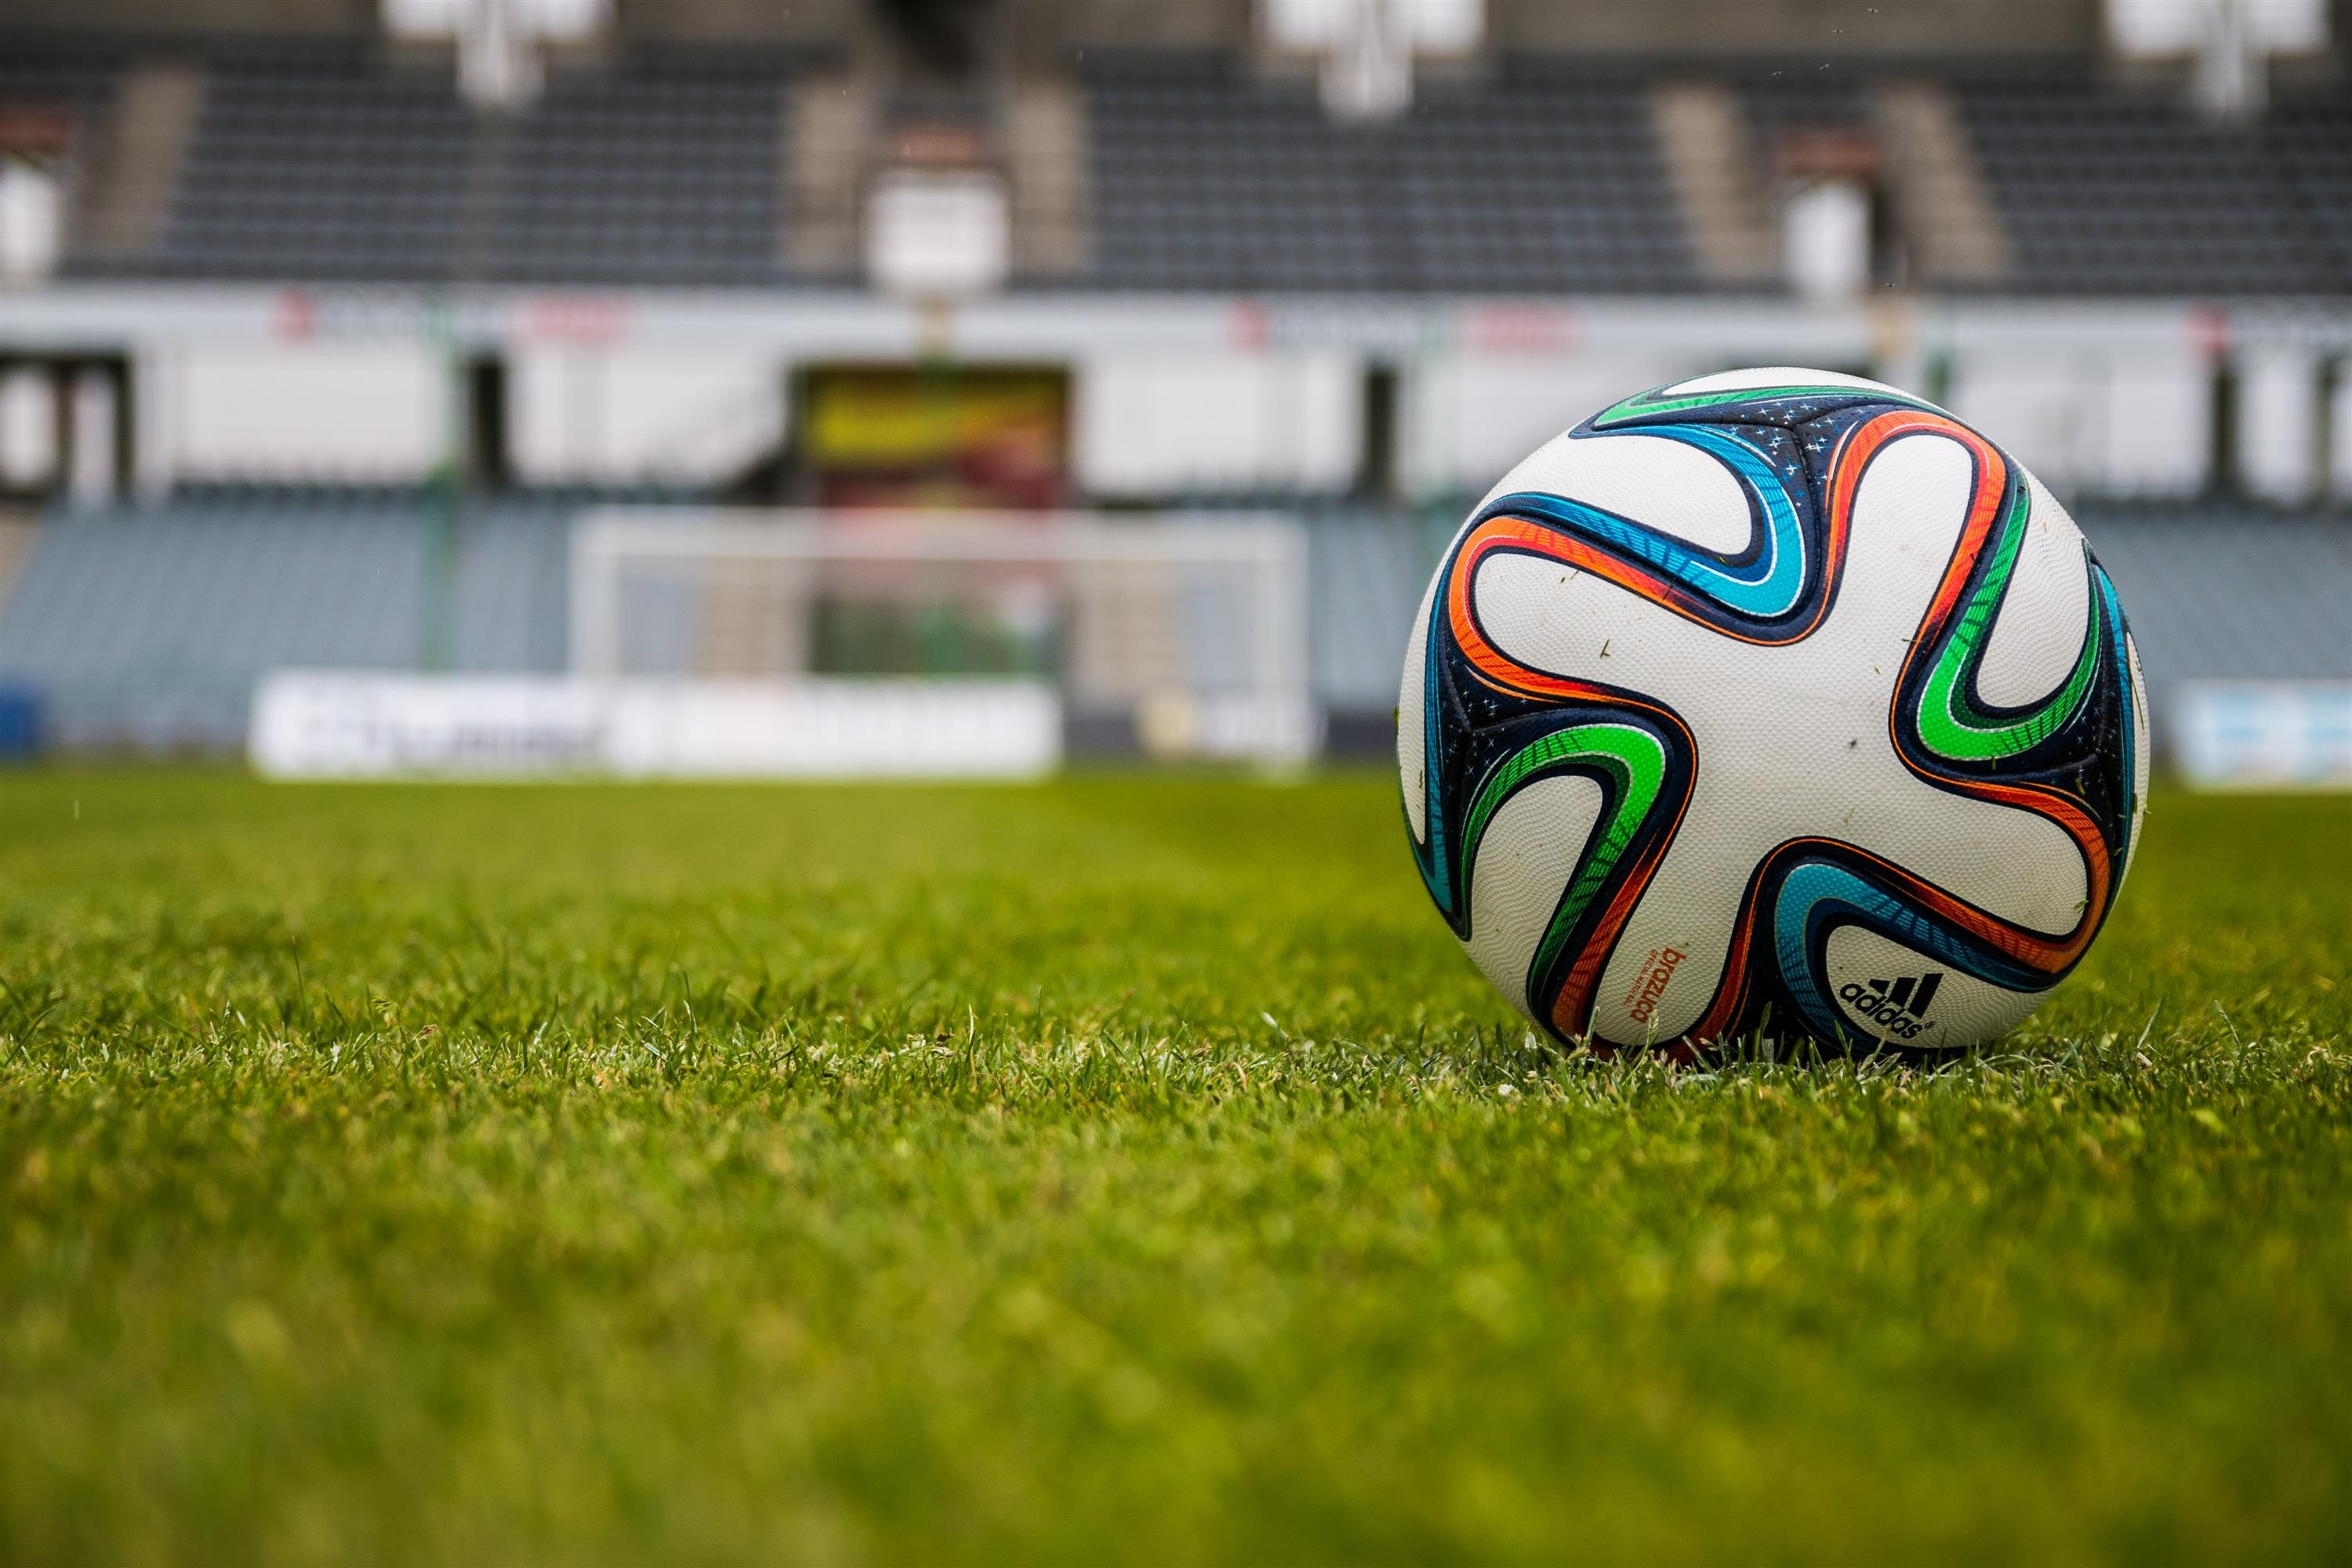 Black And White Soccer Ball 183 Free Stock Photo